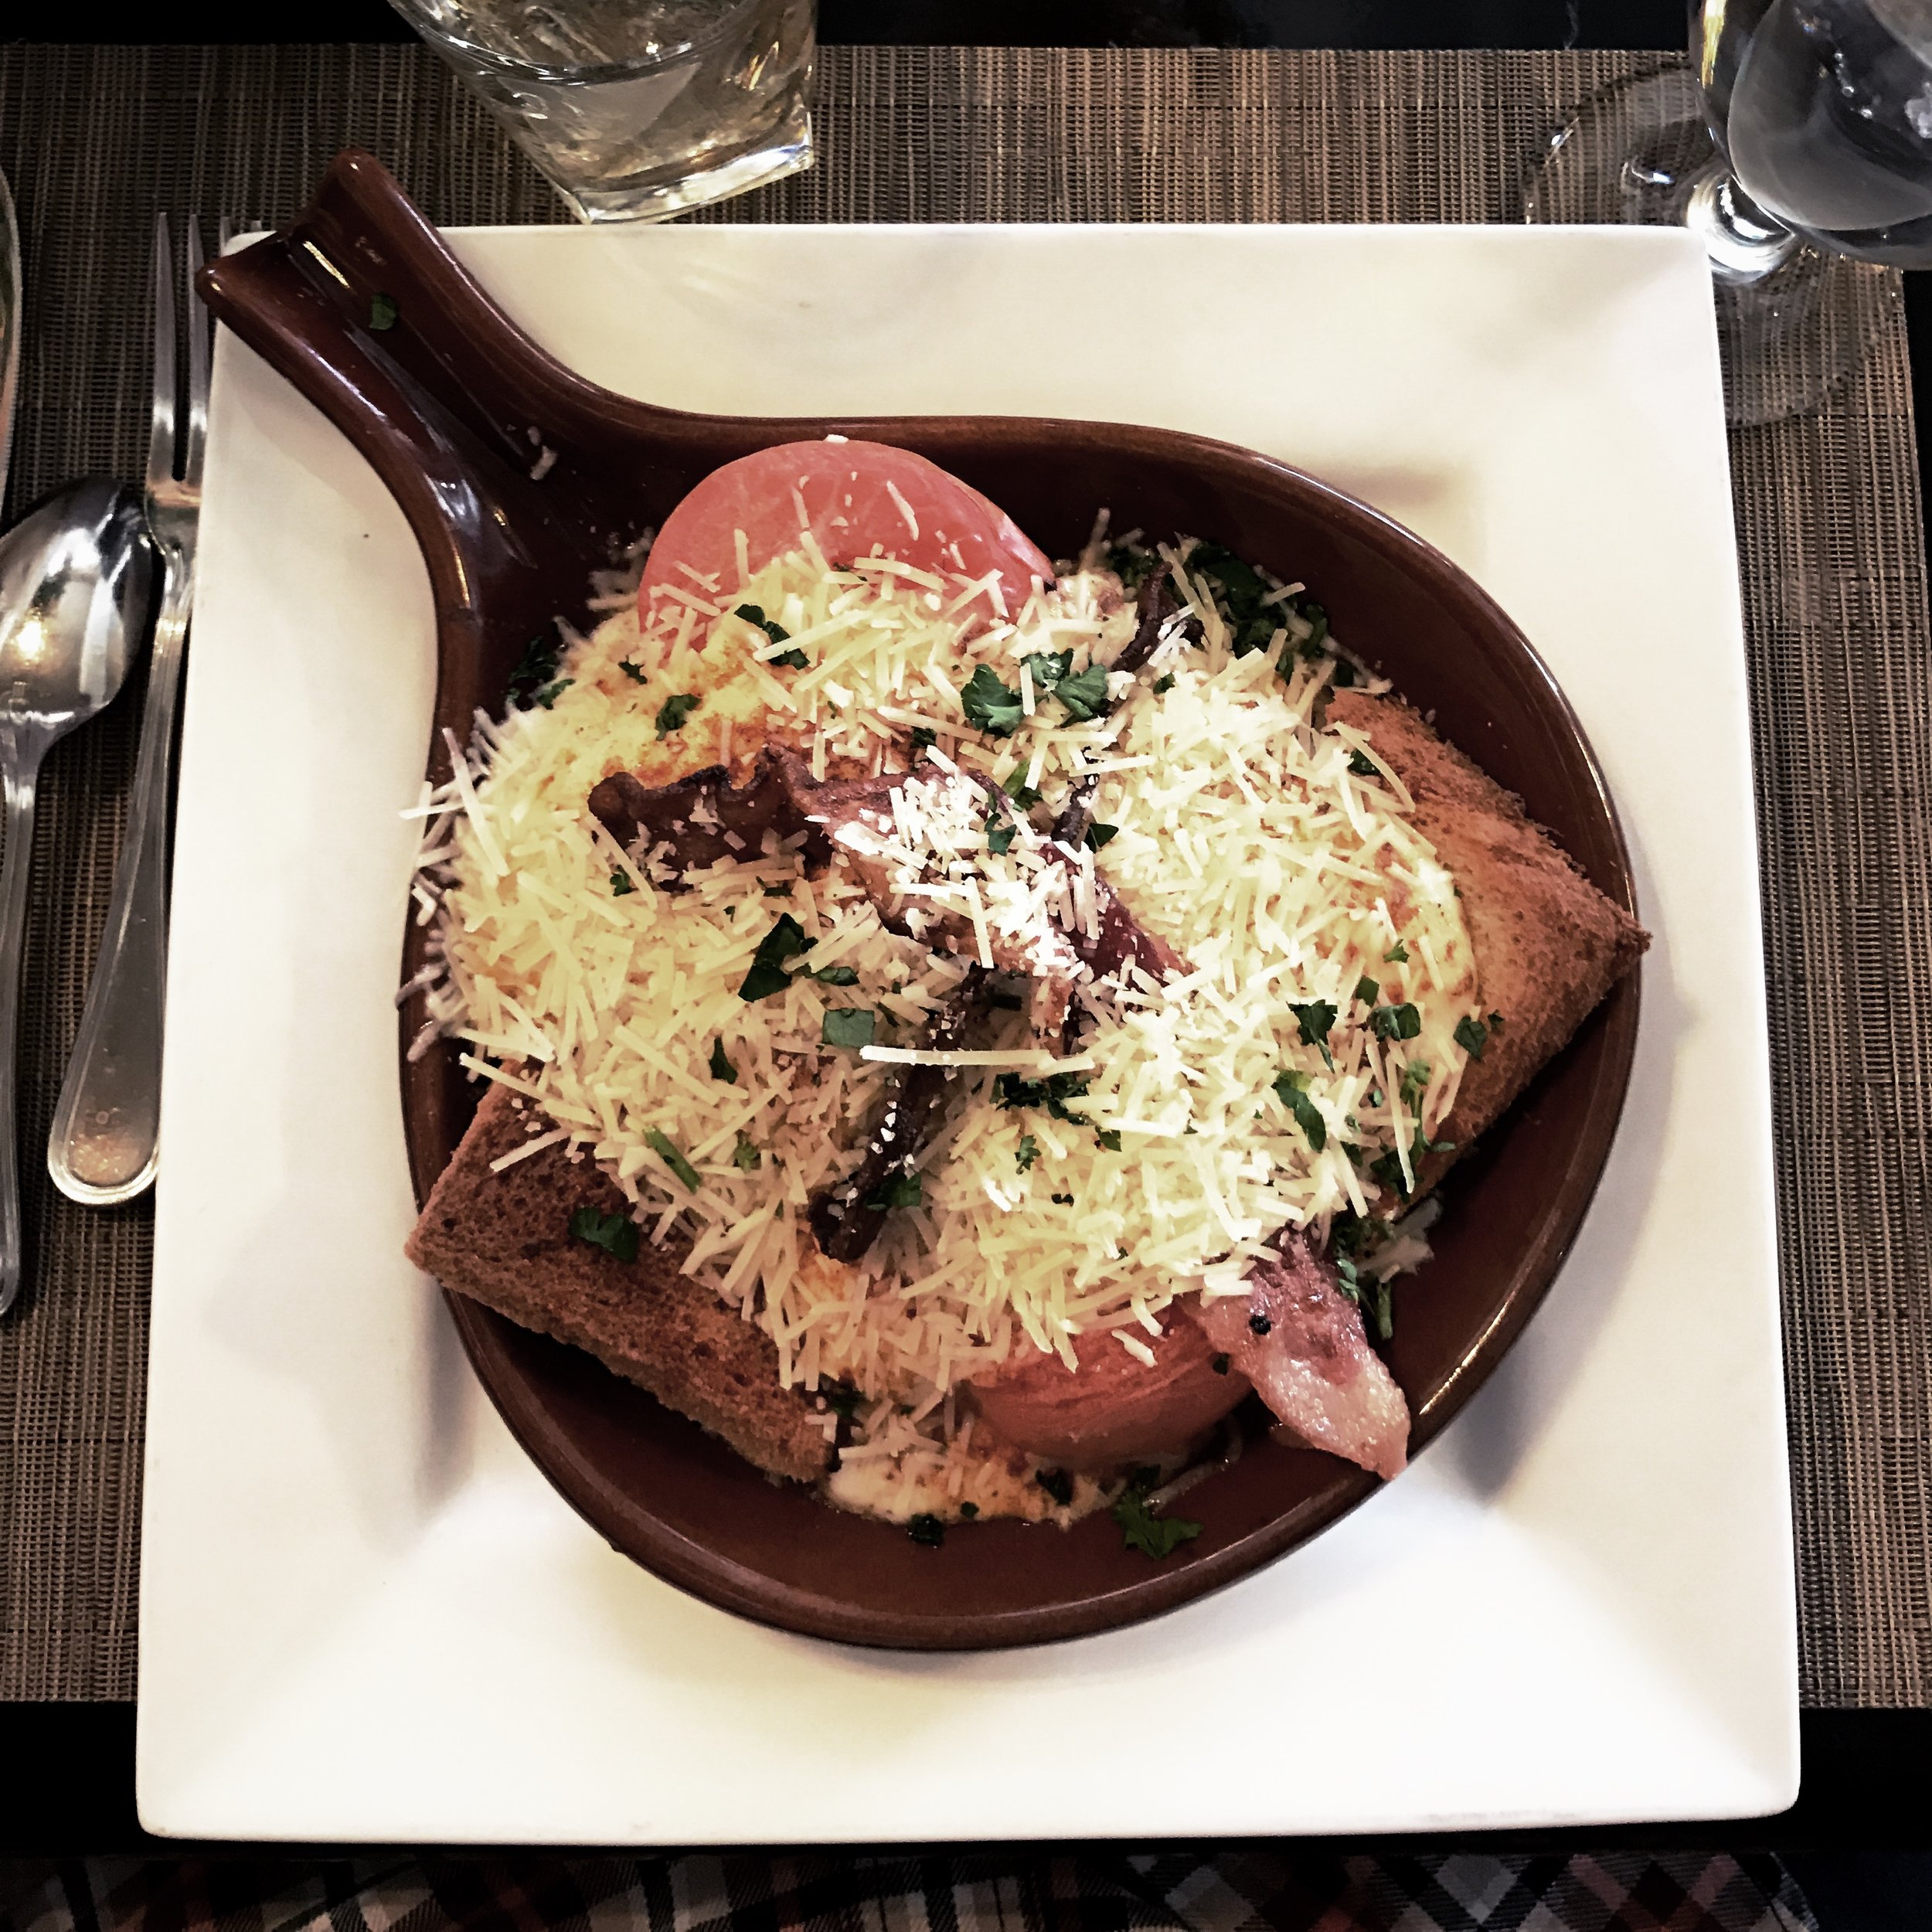 The world famous Hot Brown originated in this historic cafe